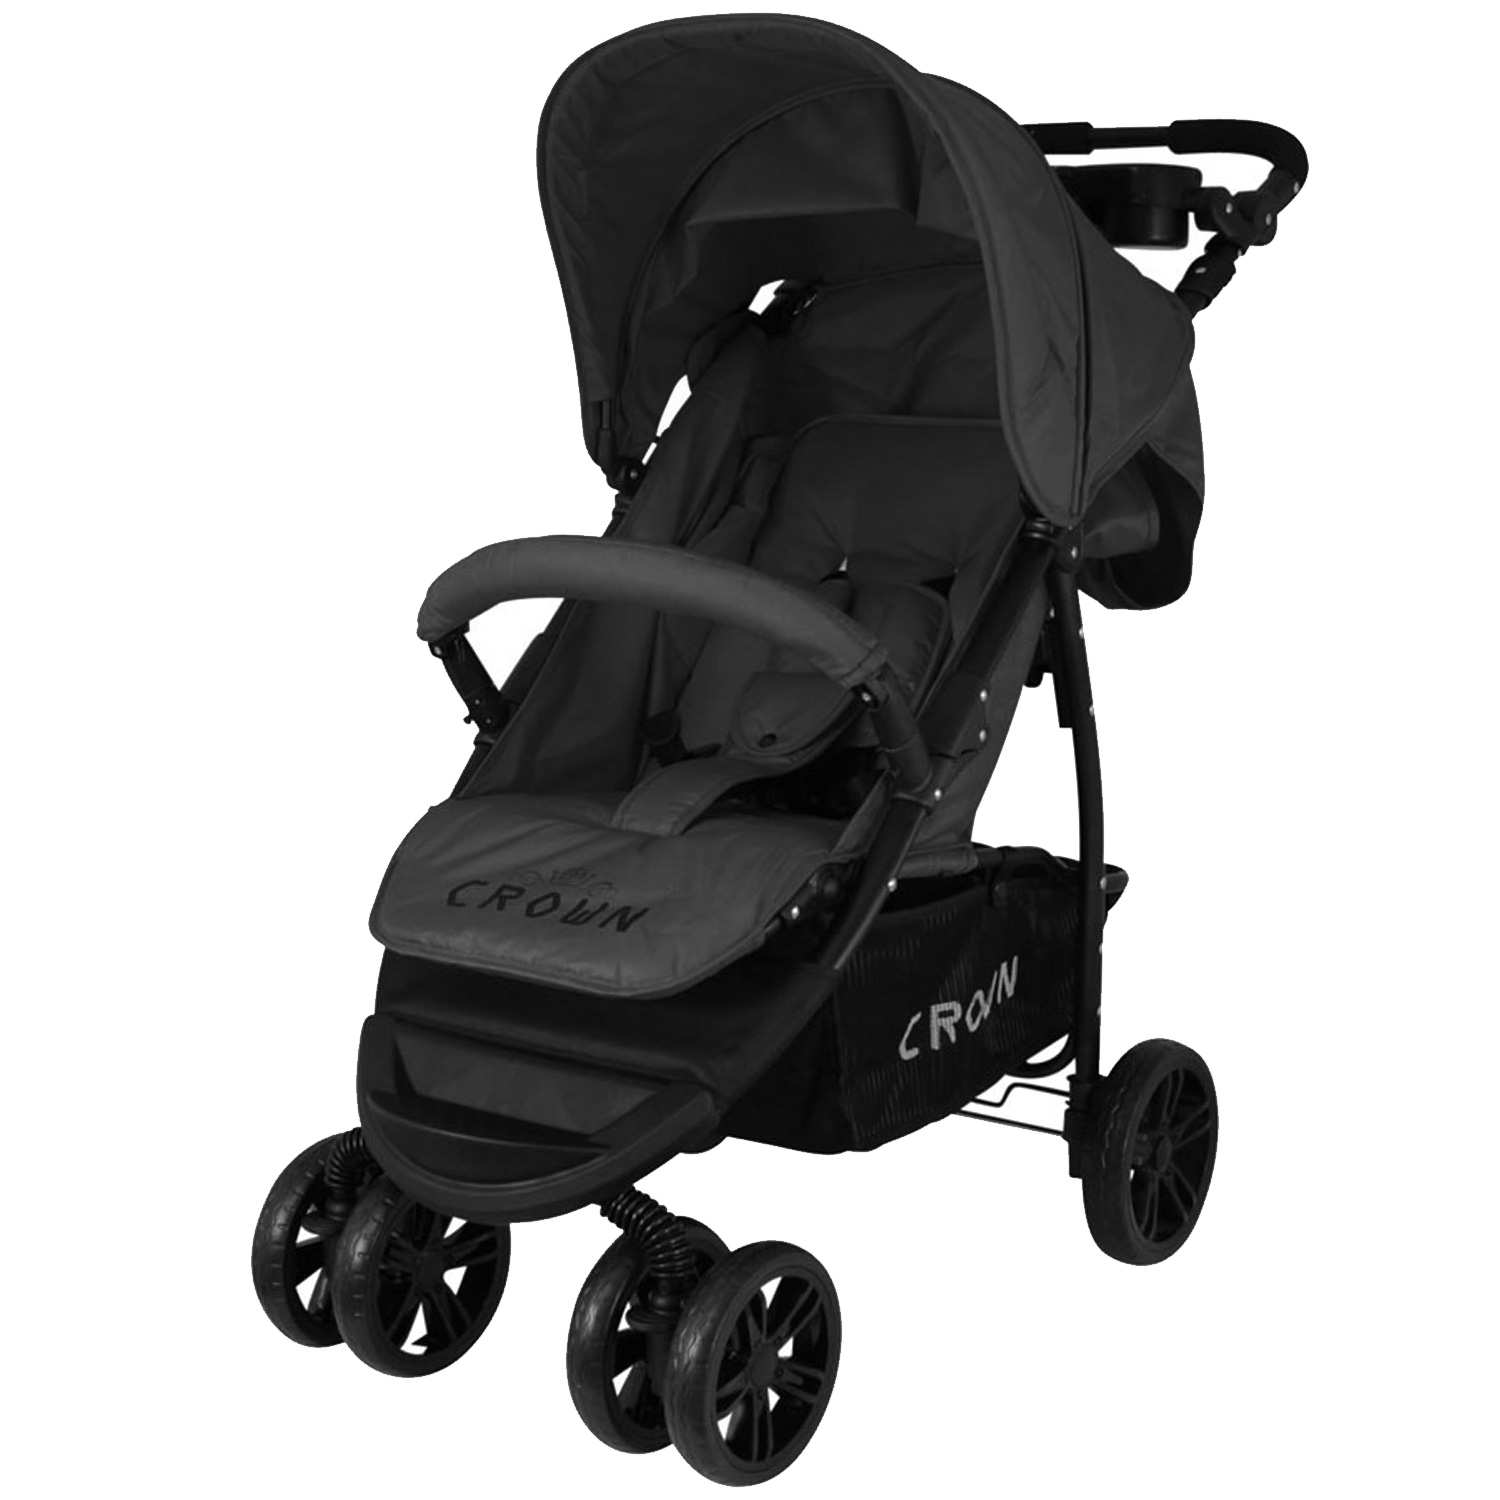 crown st560 kinderwagen buggy sport jogger in schwarz. Black Bedroom Furniture Sets. Home Design Ideas